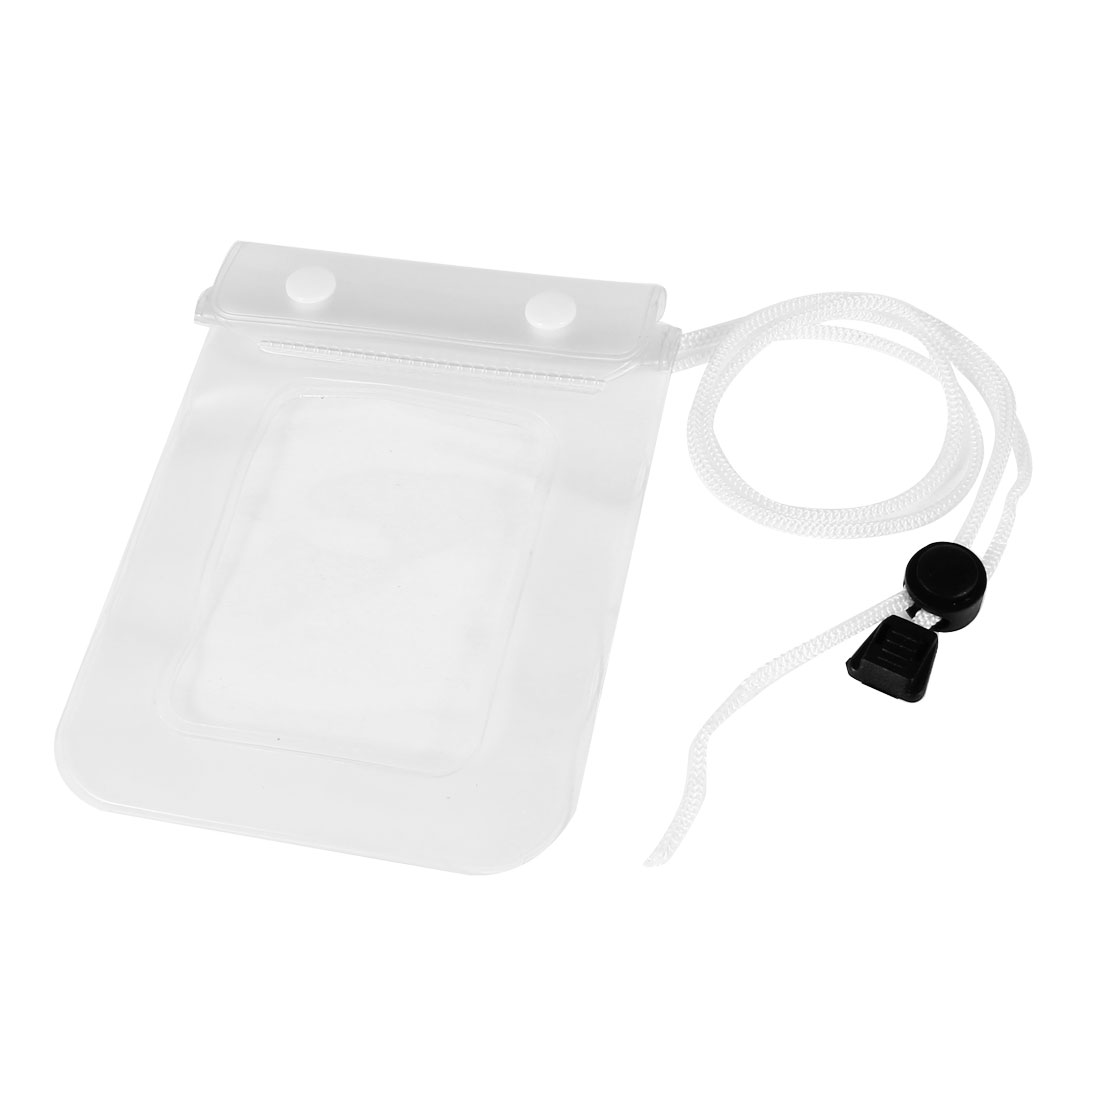 White Plastic Water Resistant Bag Case Pouch w Neck Strap for Cell Phone